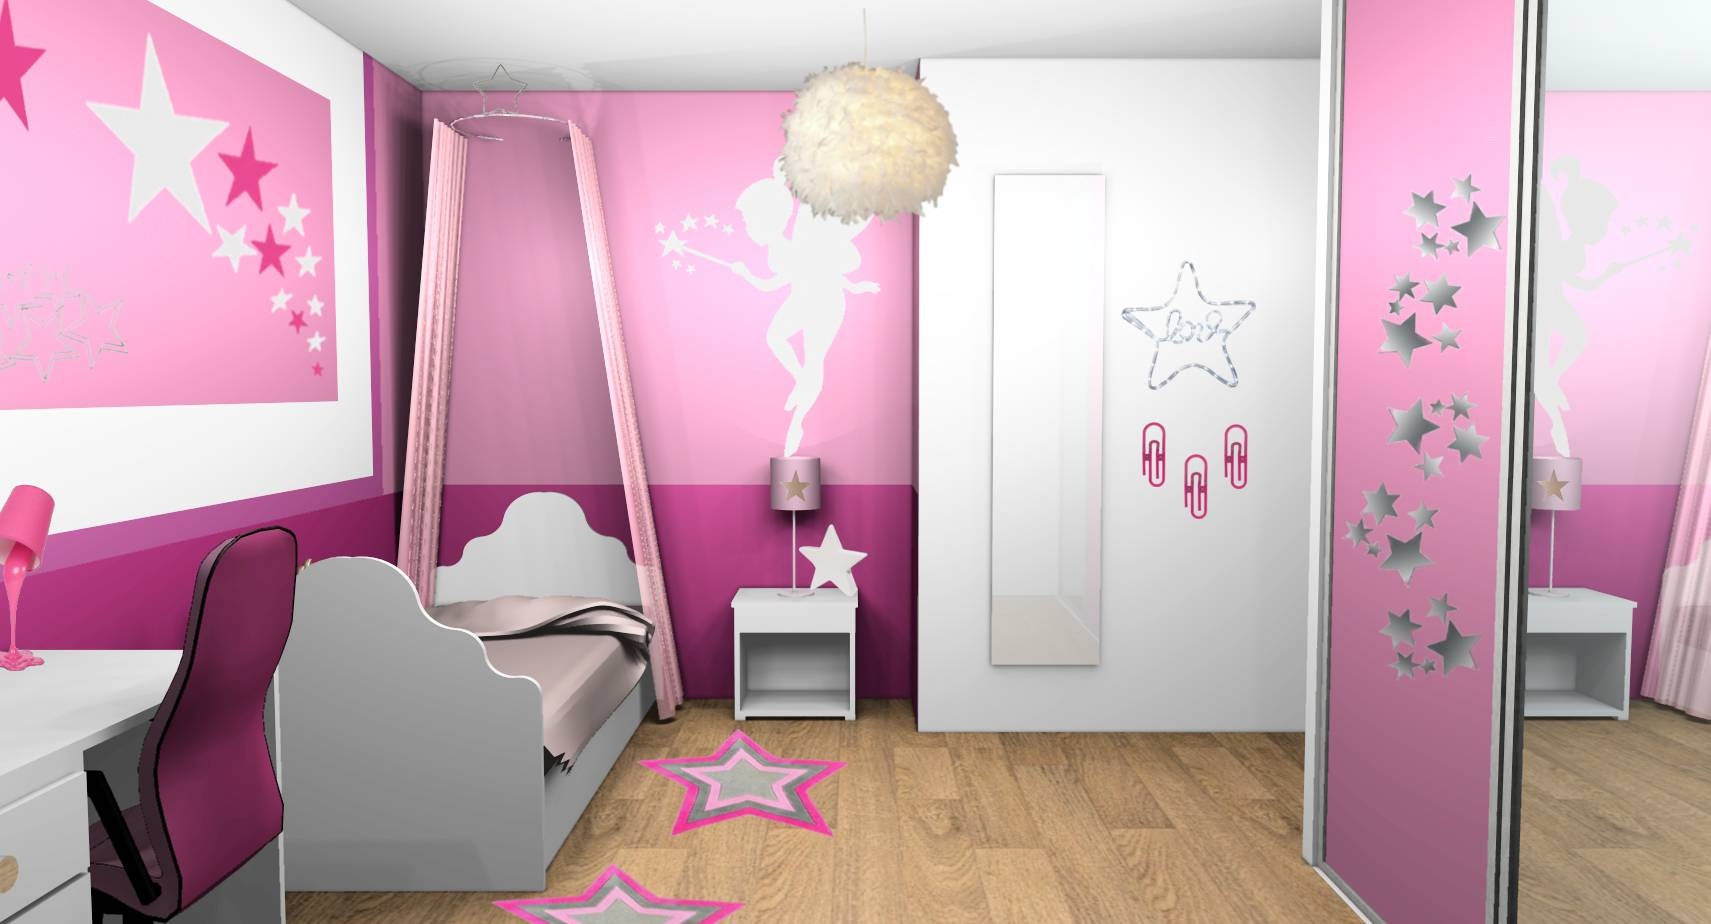 decoration interieur chambre fille. Black Bedroom Furniture Sets. Home Design Ideas